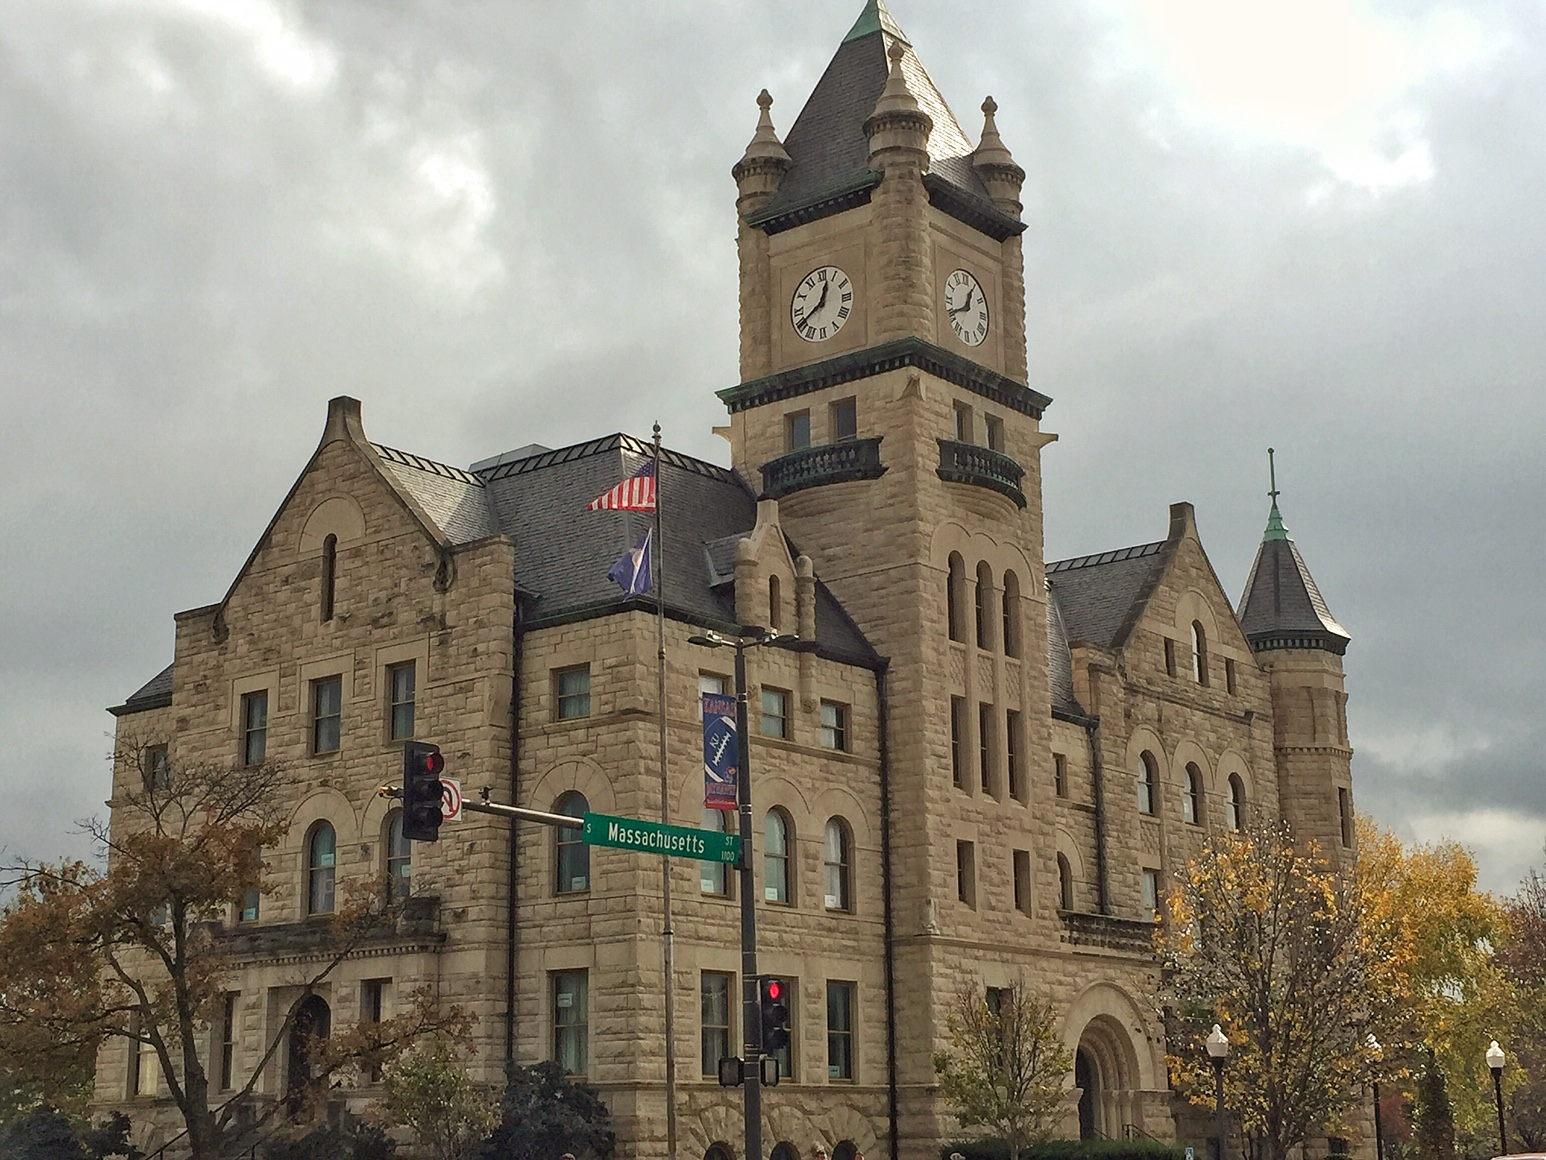 Douglas County Courthouse, Lawrence, Kansas (Photo by J. Schafer)